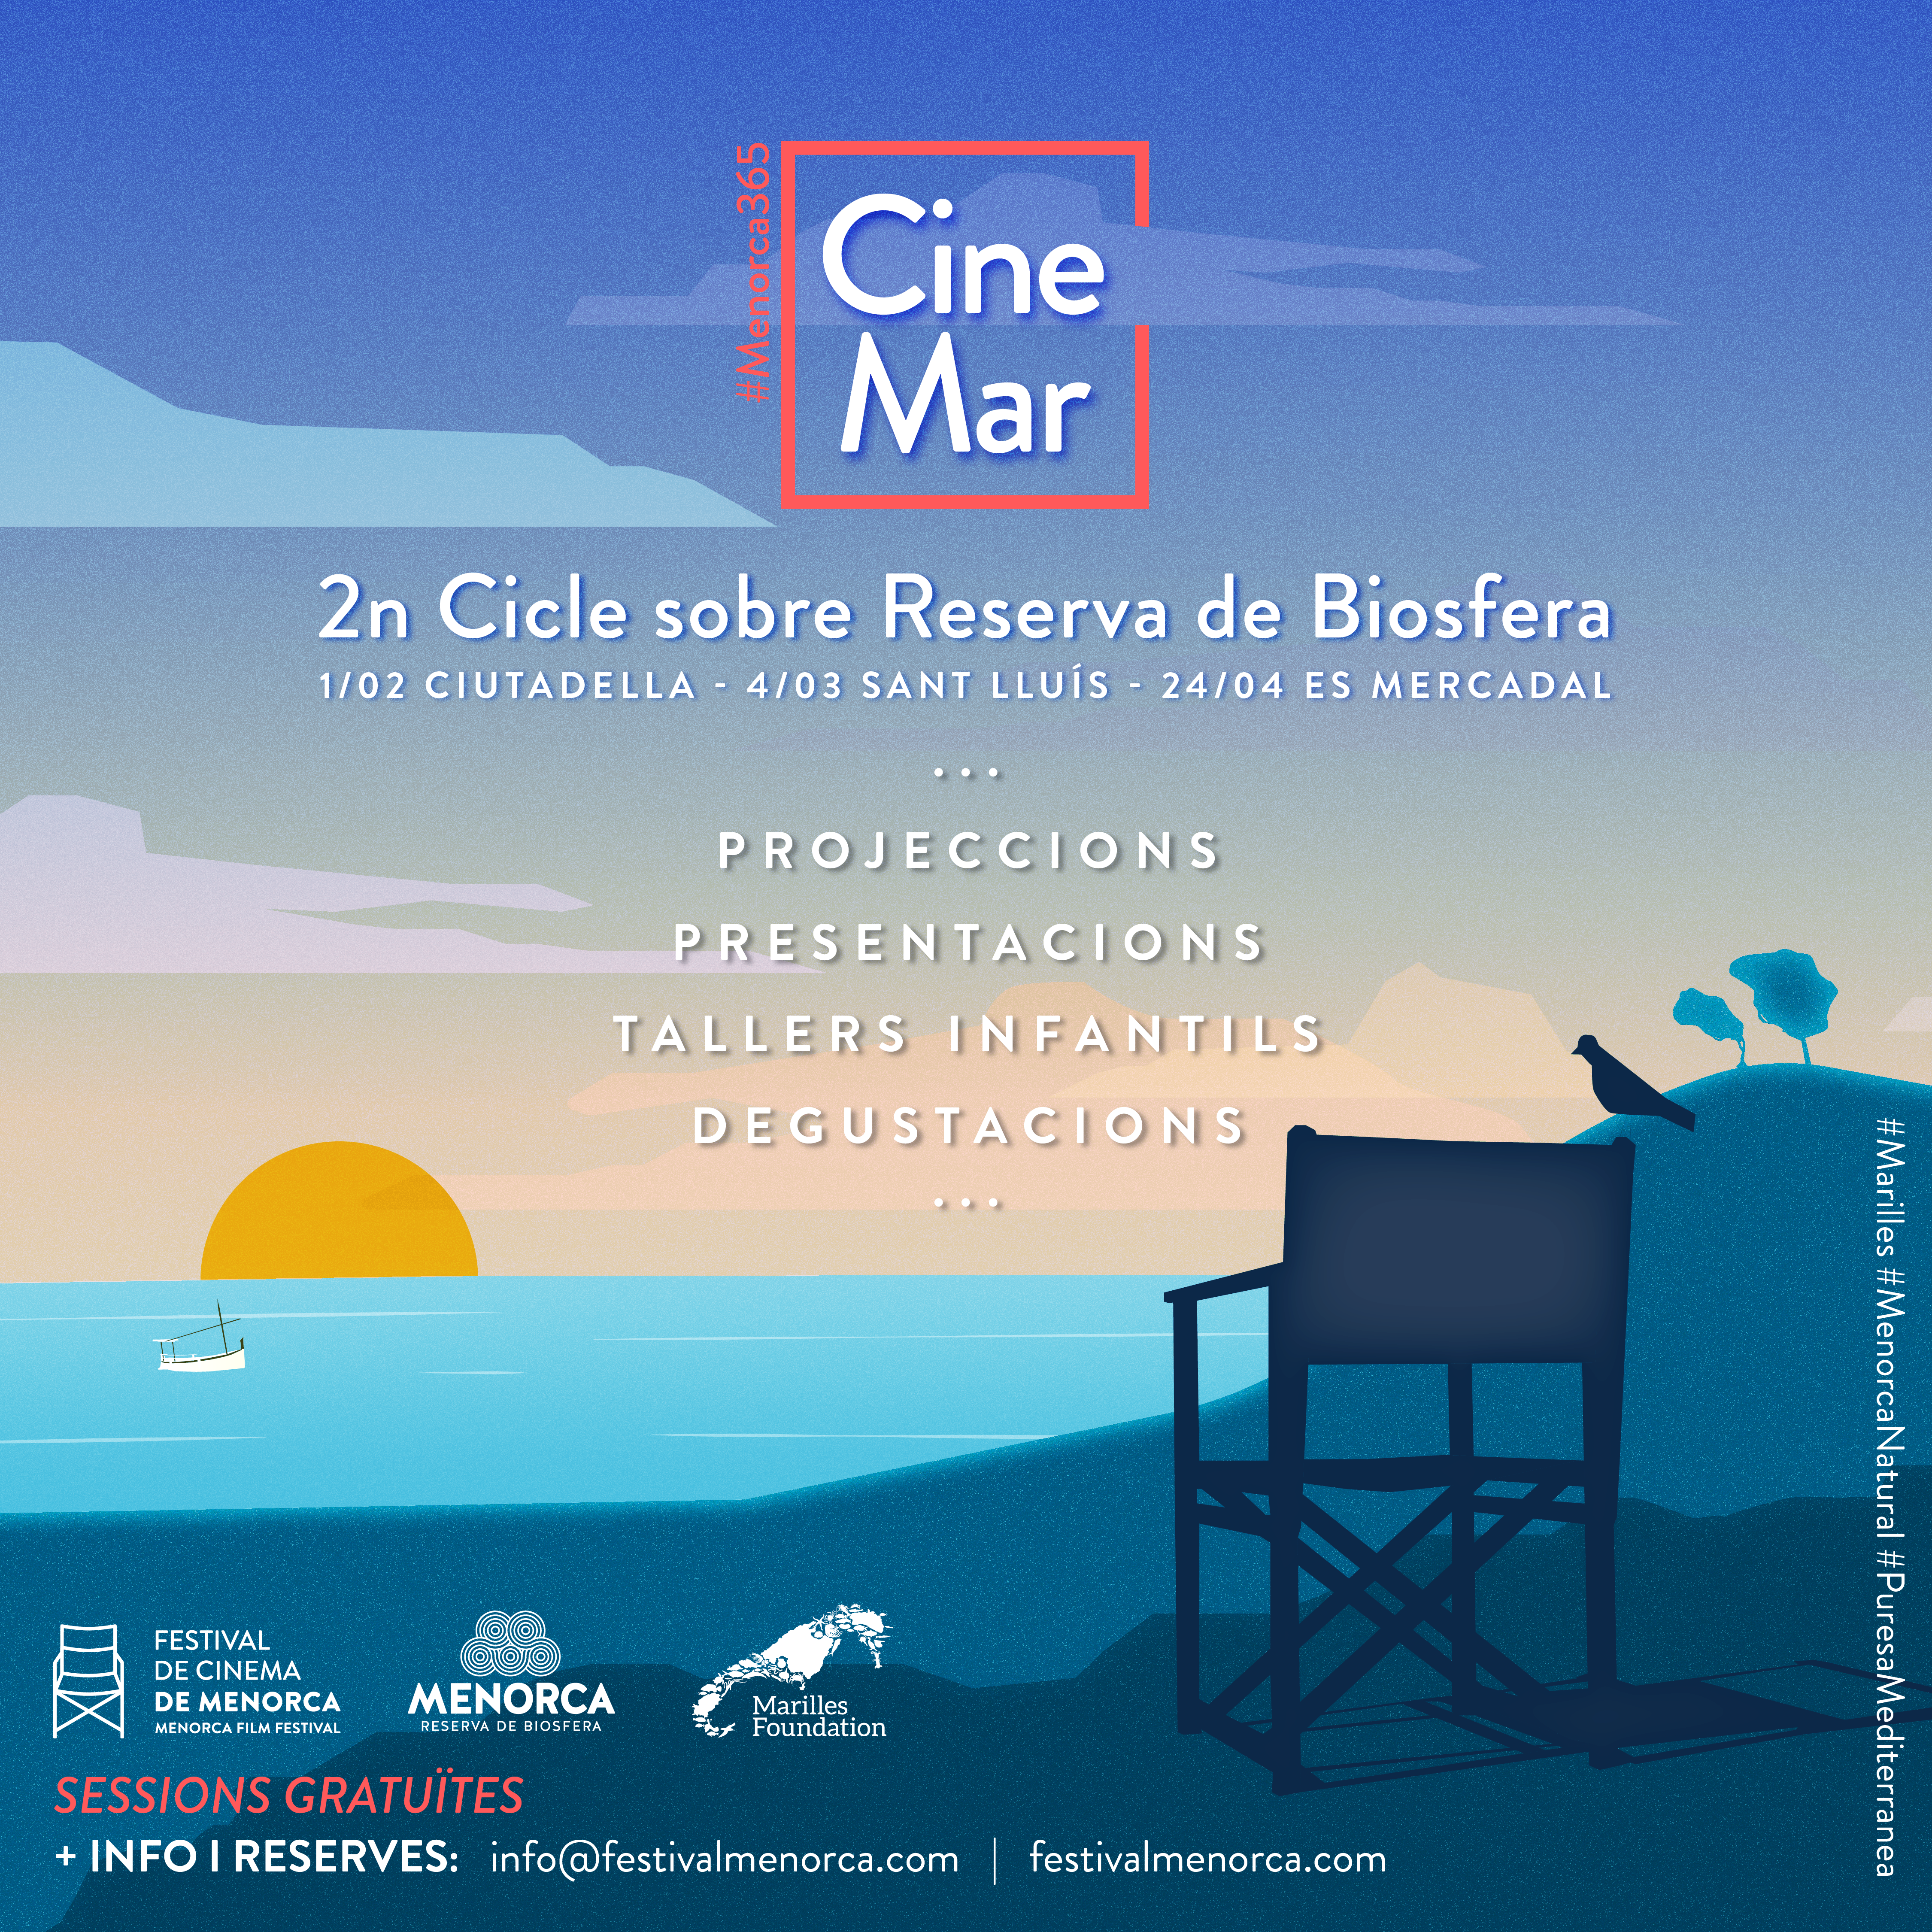 The sea plays a leading role in the new Reserva de Biosfera film cycle